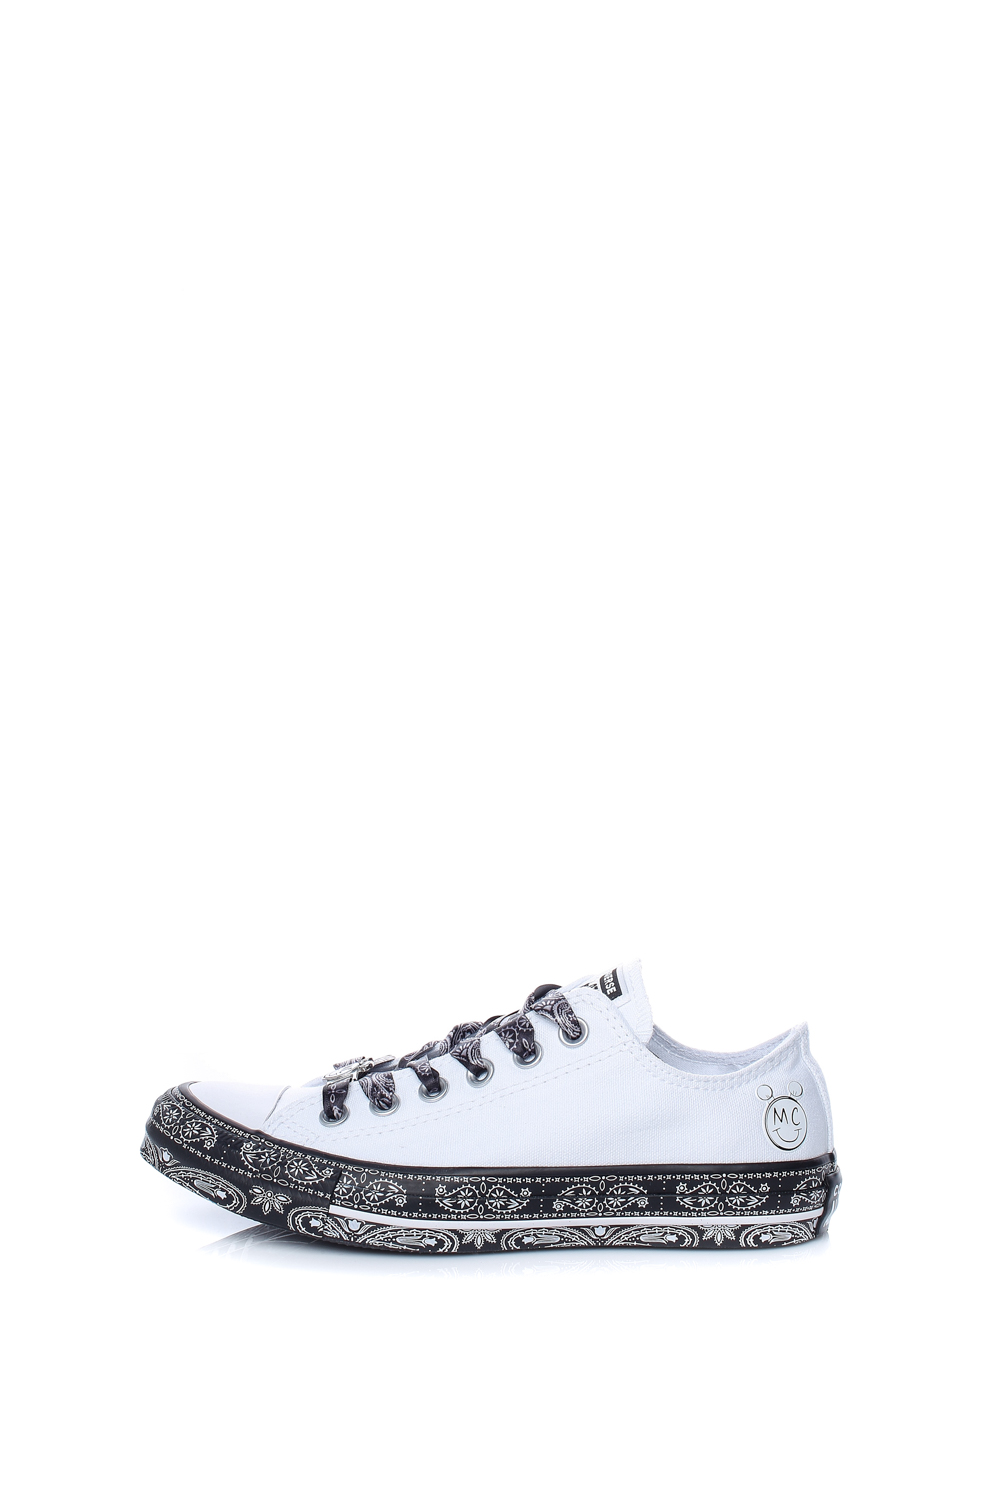 CONVERSE – Unisex sneakers CONVERSE MILEY CYRUS λευκά